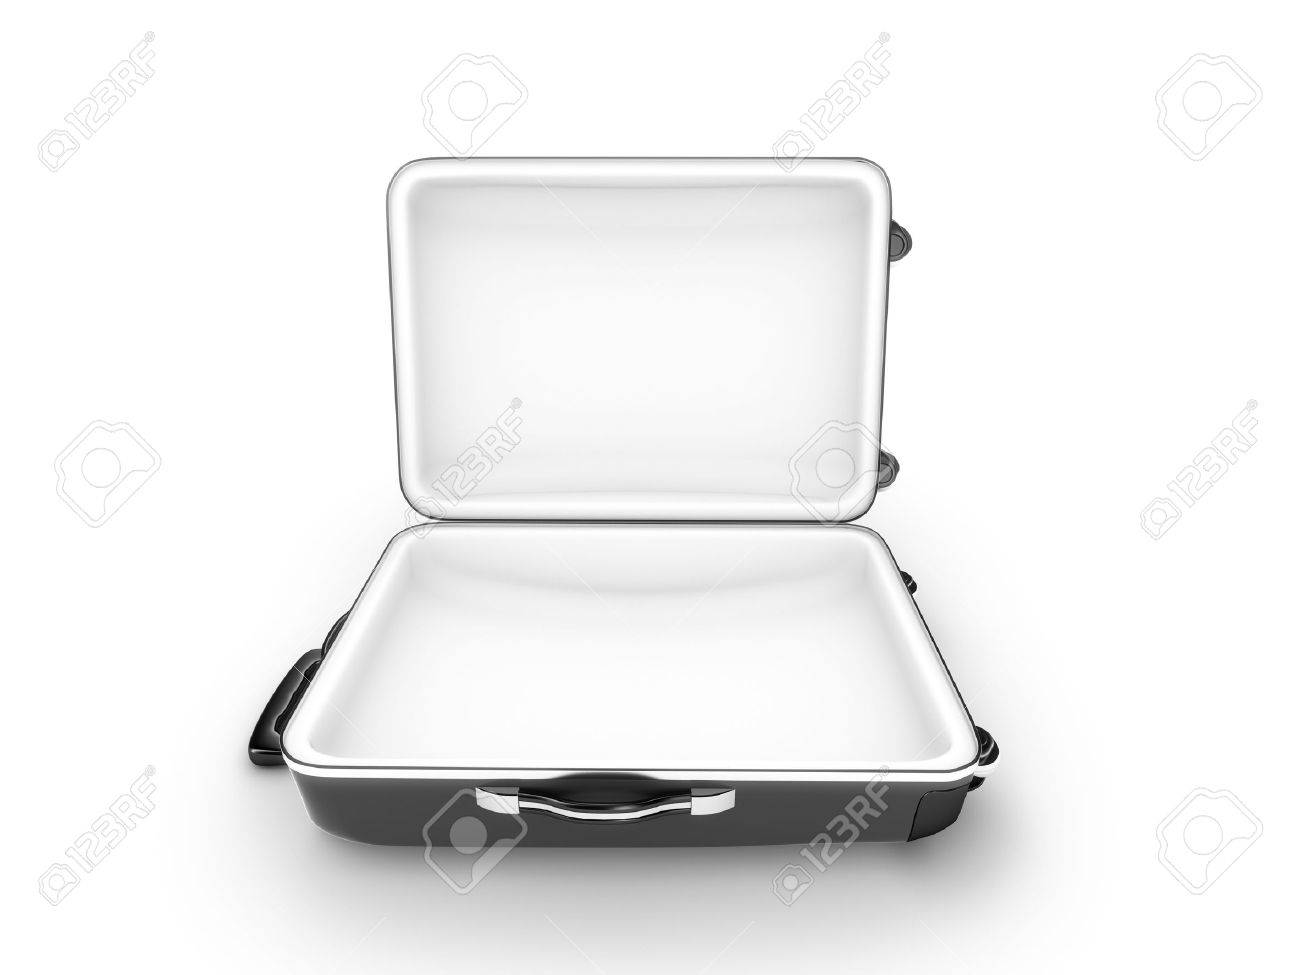 Open metal case isolated on white background - 3d render - 23676816